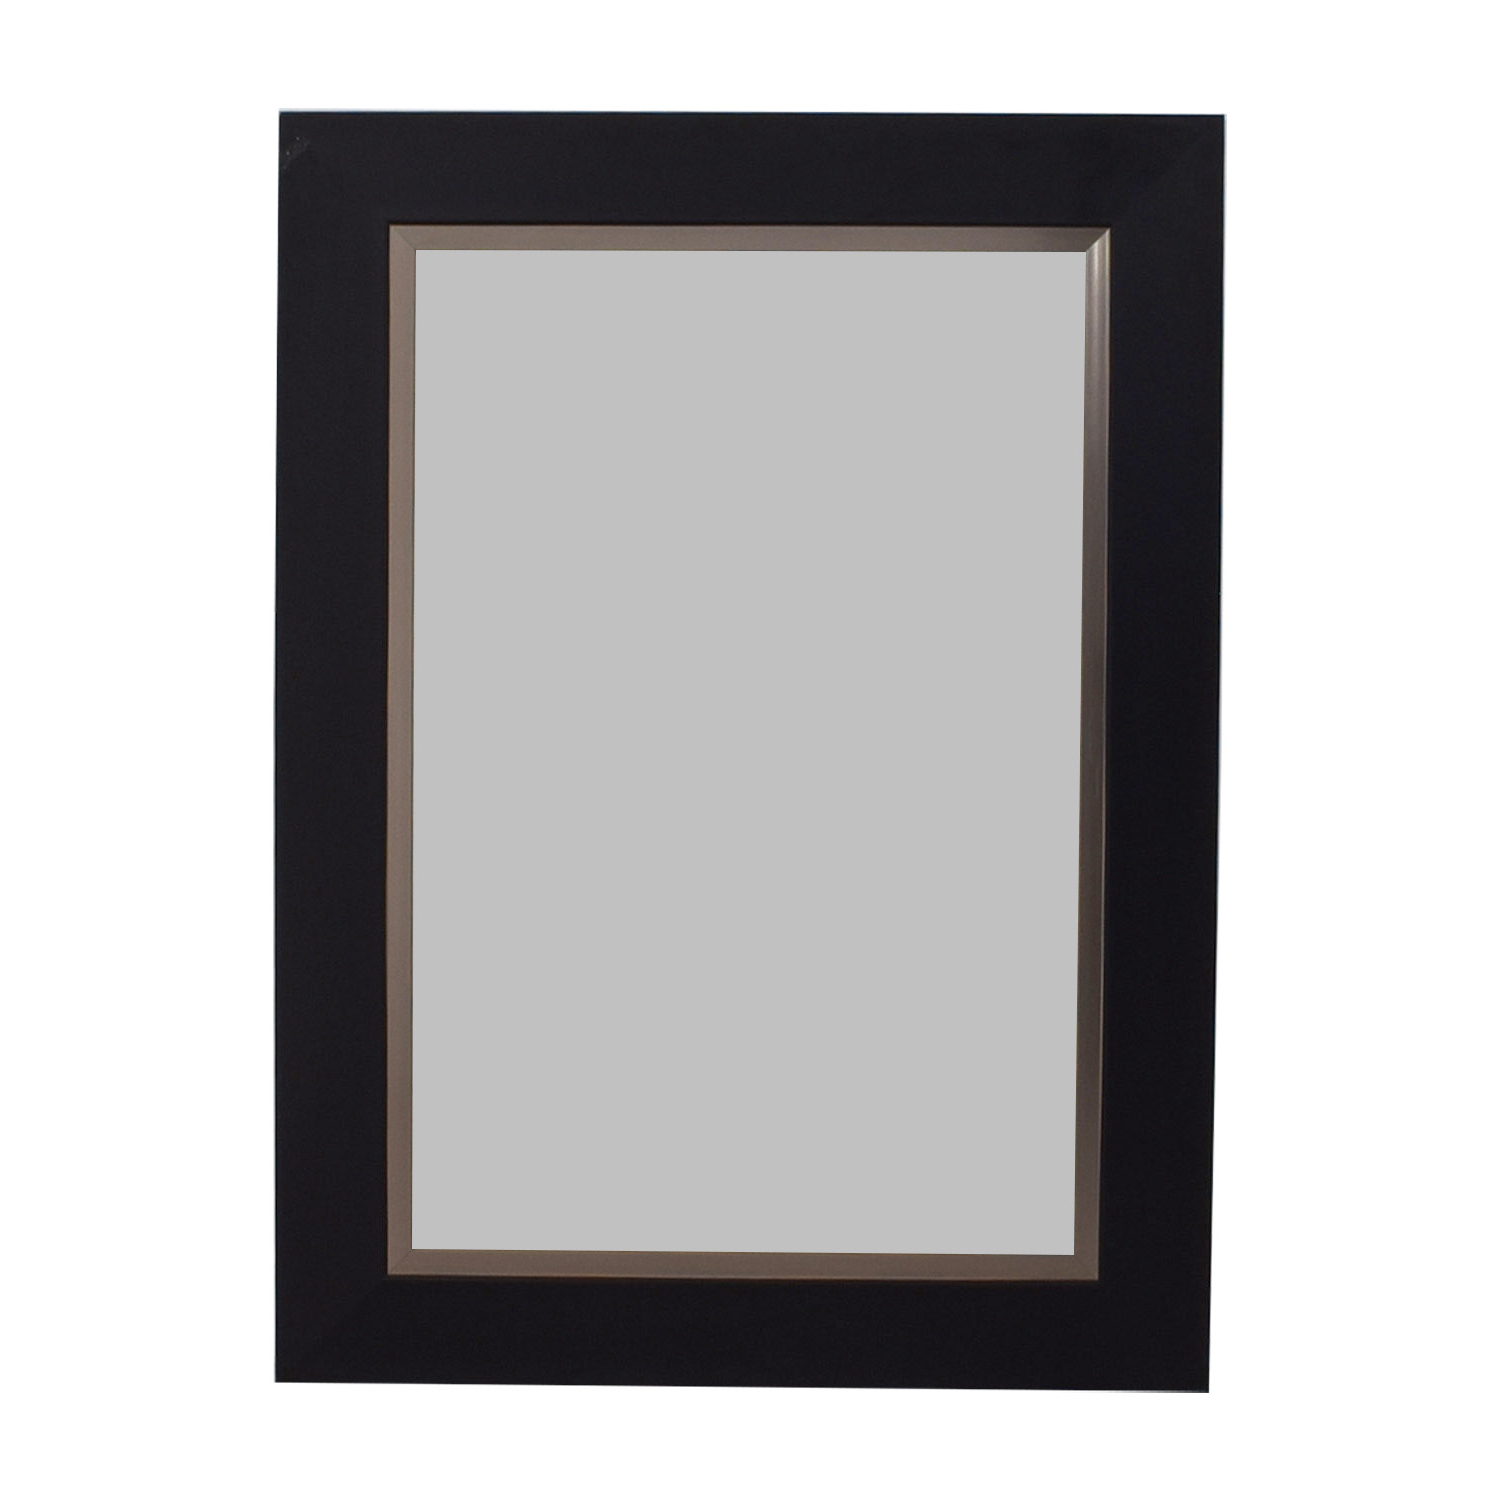 [%60% Off – Homegoods Black Framed Wall Mirror / Decor Pertaining To Well Known Home Goods Wall Mirrors|home Goods Wall Mirrors Intended For Most Recent 60% Off – Homegoods Black Framed Wall Mirror / Decor|famous Home Goods Wall Mirrors Inside 60% Off – Homegoods Black Framed Wall Mirror / Decor|most Recent 60% Off – Homegoods Black Framed Wall Mirror / Decor With Home Goods Wall Mirrors%] (View 13 of 20)